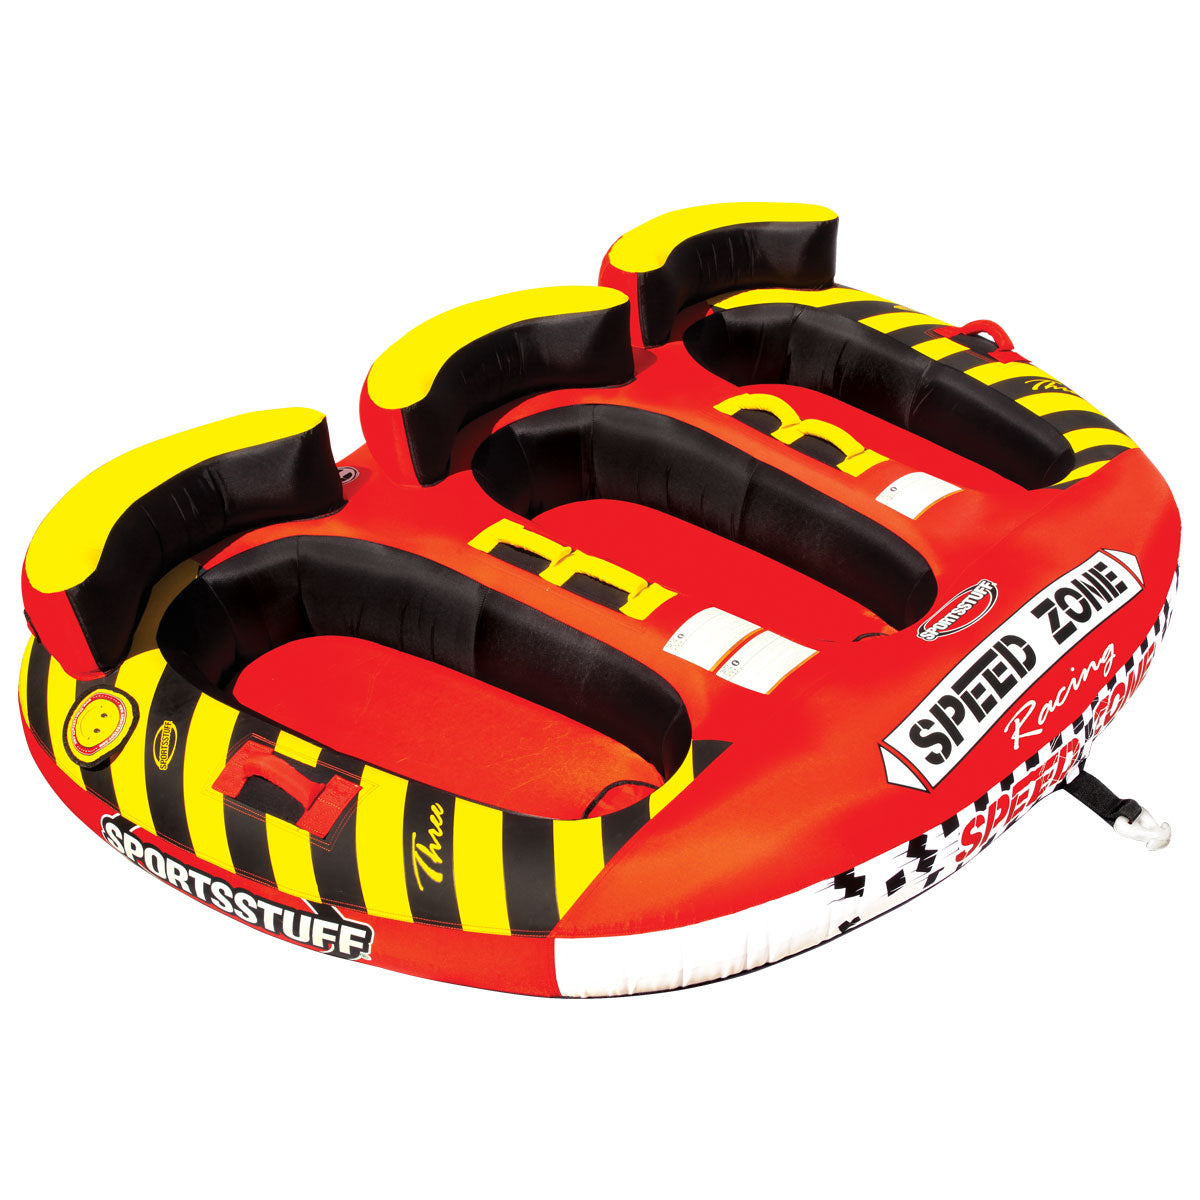 Boat Parts Inflatables New Sportsstuff Towable Boat Tube 3 Rider Speedzone 3 Spo 531940